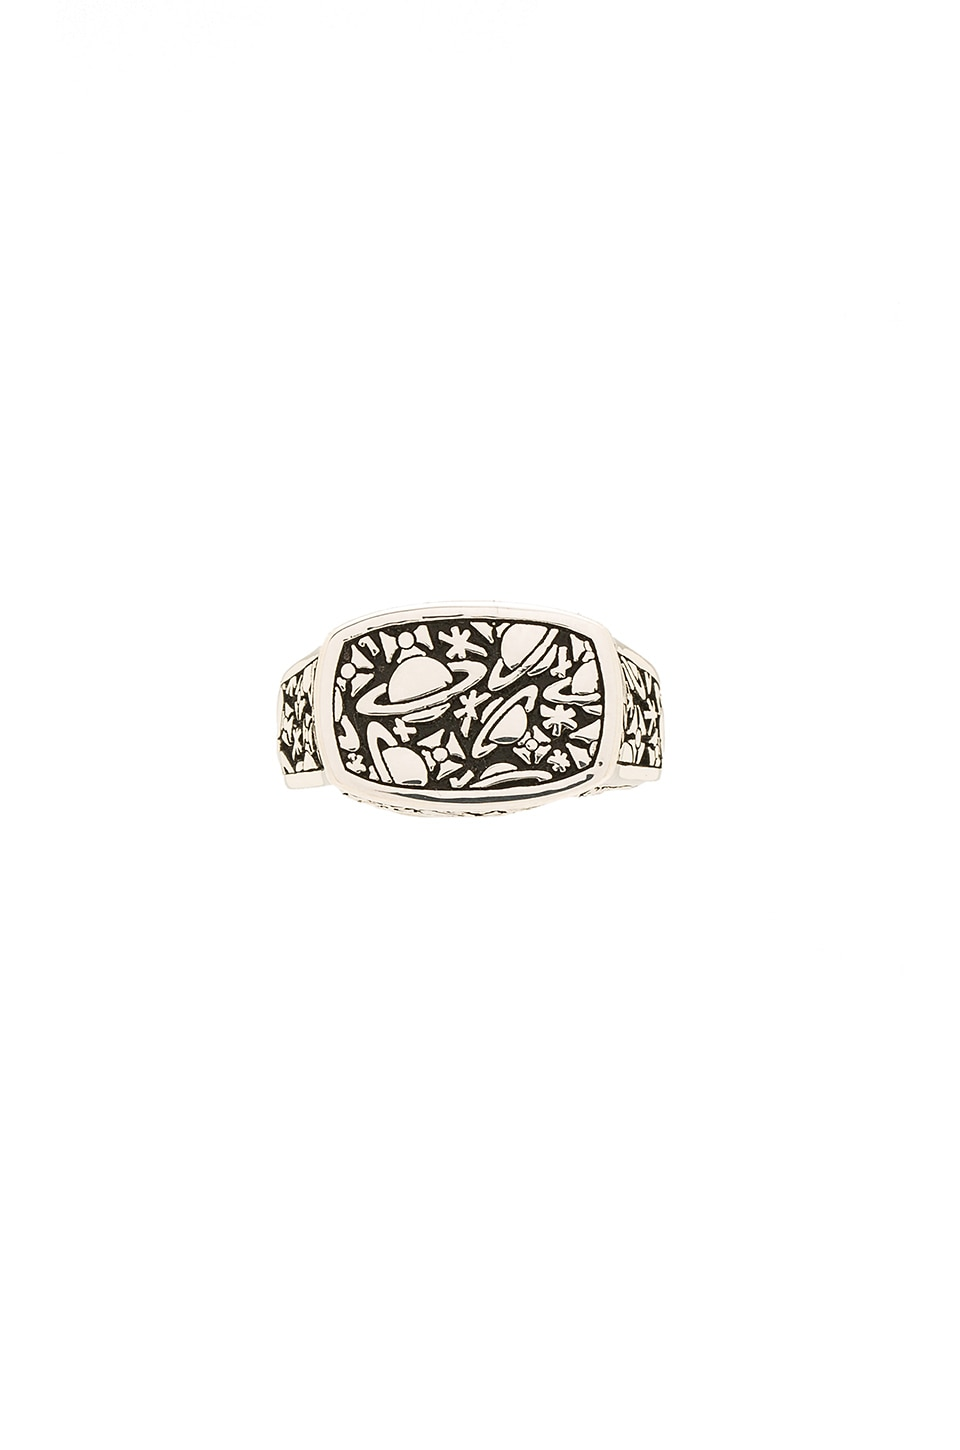 Angelo Ring by Vivienne Westwood